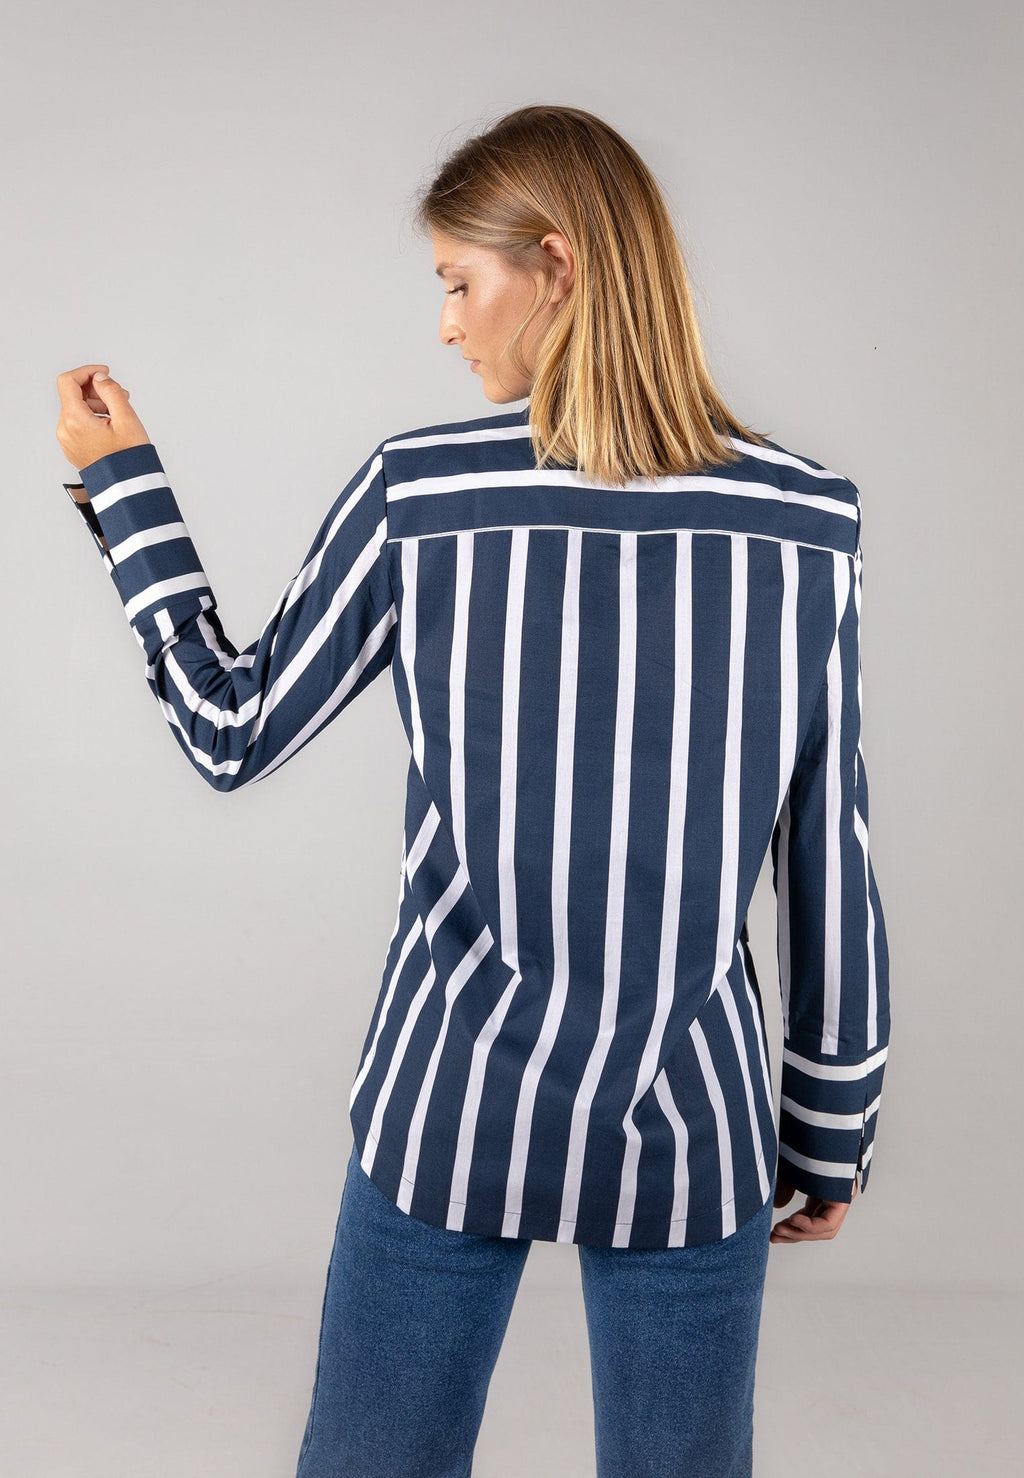 the navy stripes